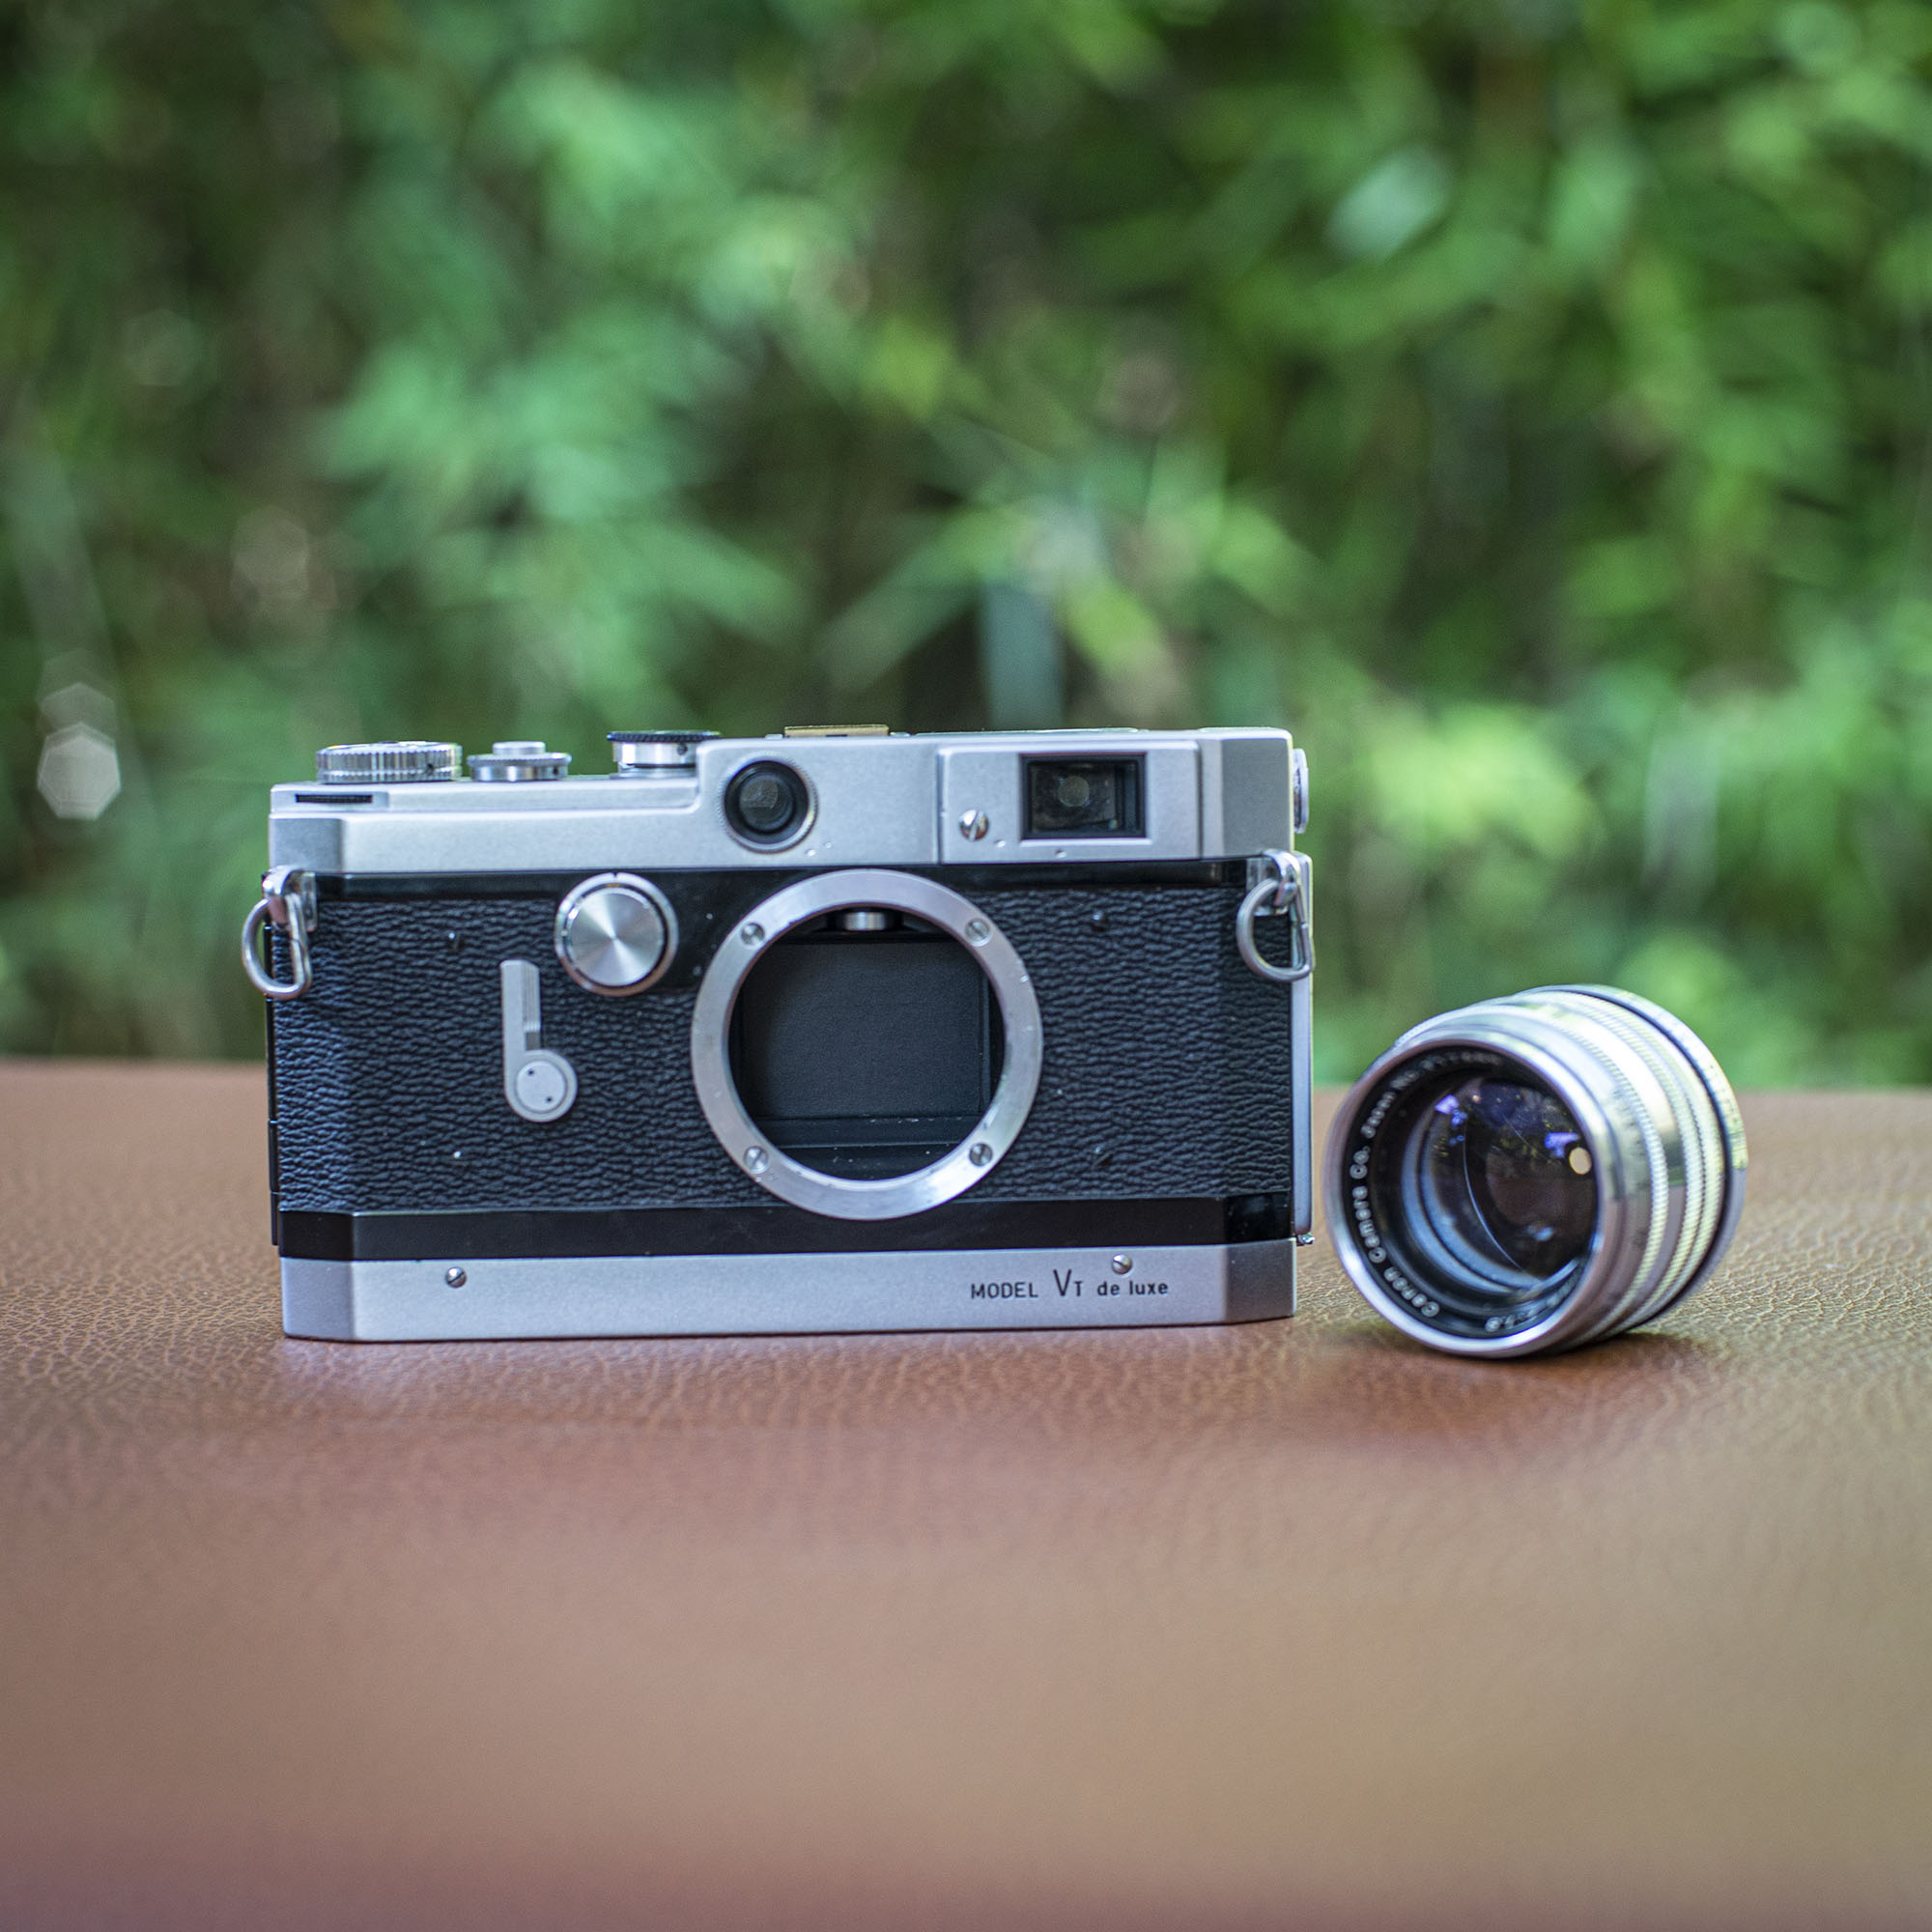 camera with lens removed